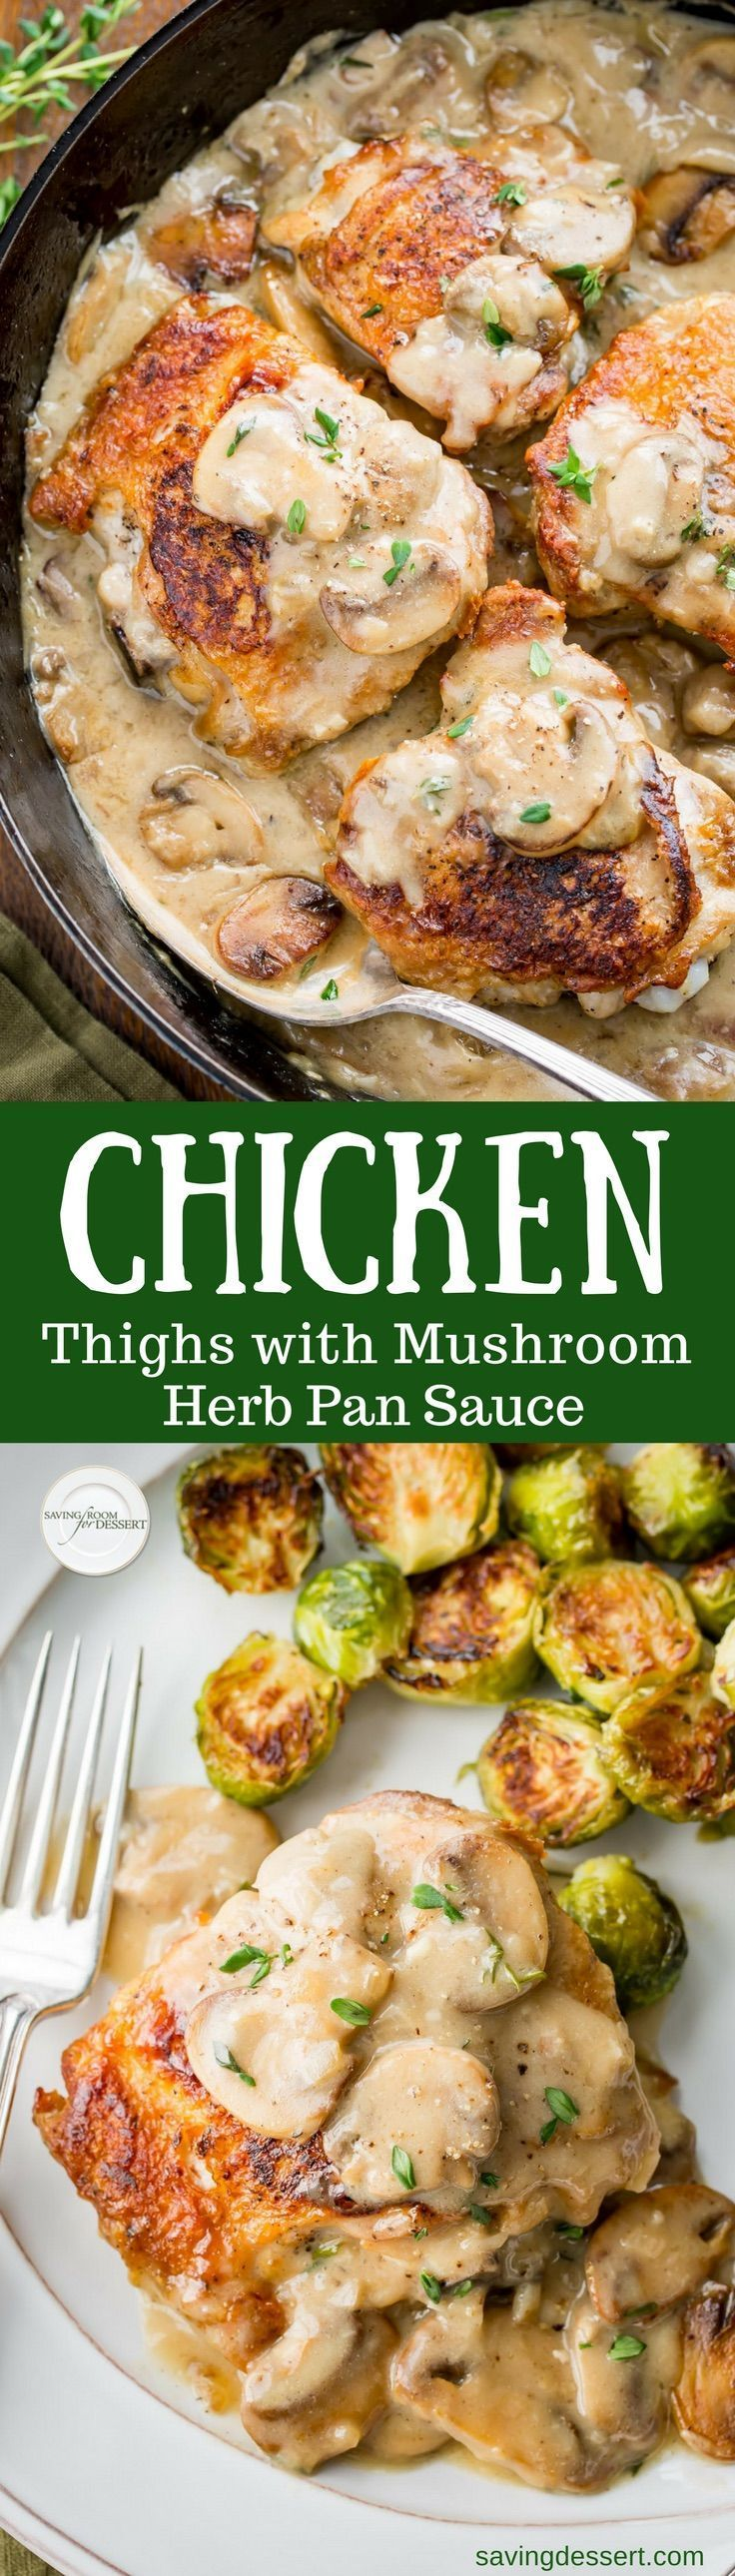 Chicken Thighs with Mushroom Herb Pan Sauce - tender, juicy and inexpensive, chi... - Connie Booth - Thighs with Mushroom Herb Pan Sauce - tender, juicy and inexpensive, chi... -  Connie Booth -